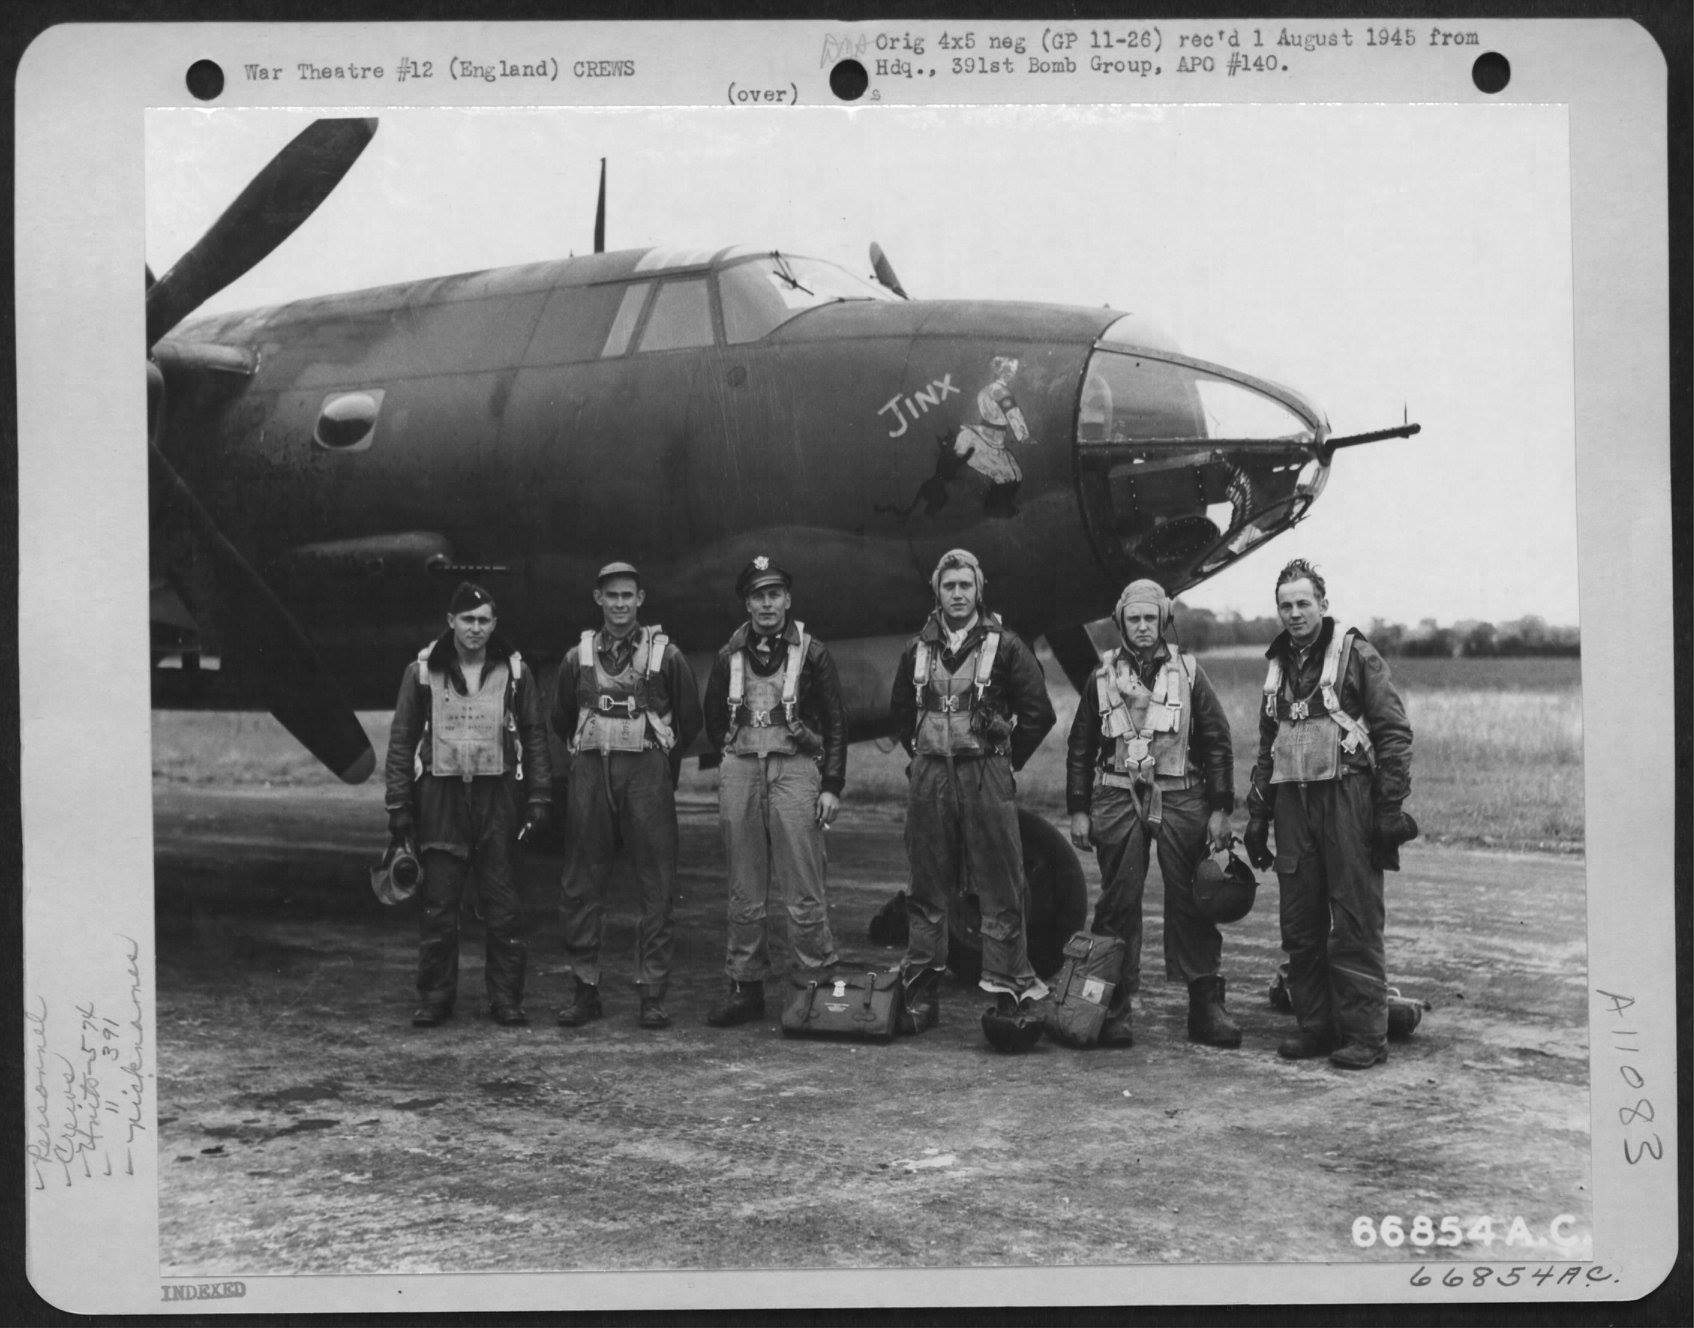 USAAF B 26B Marauder 391BG574BS Jinx with Lt Newman and crew England 16 Aug 1944 01